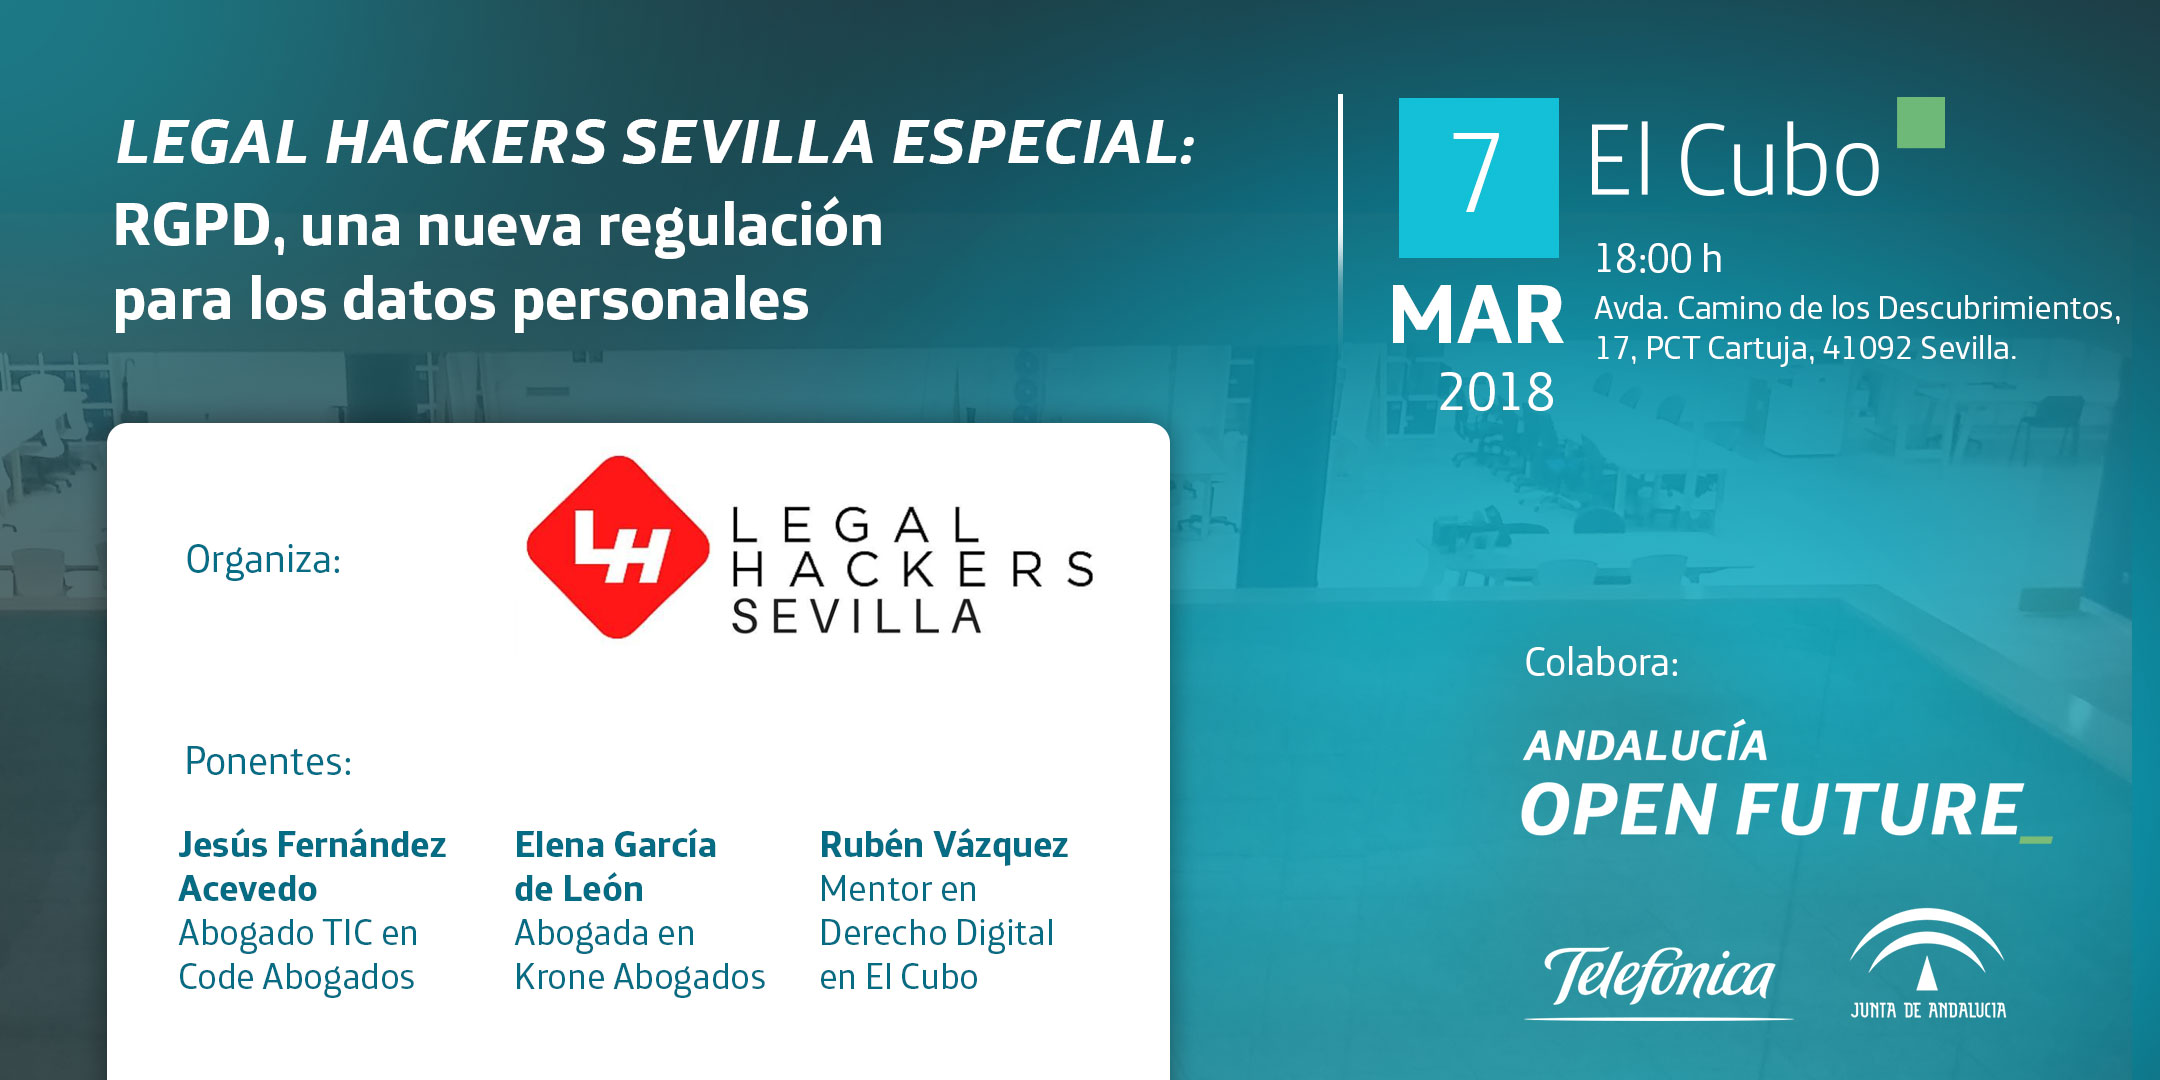 Legal Hackers Sevilla